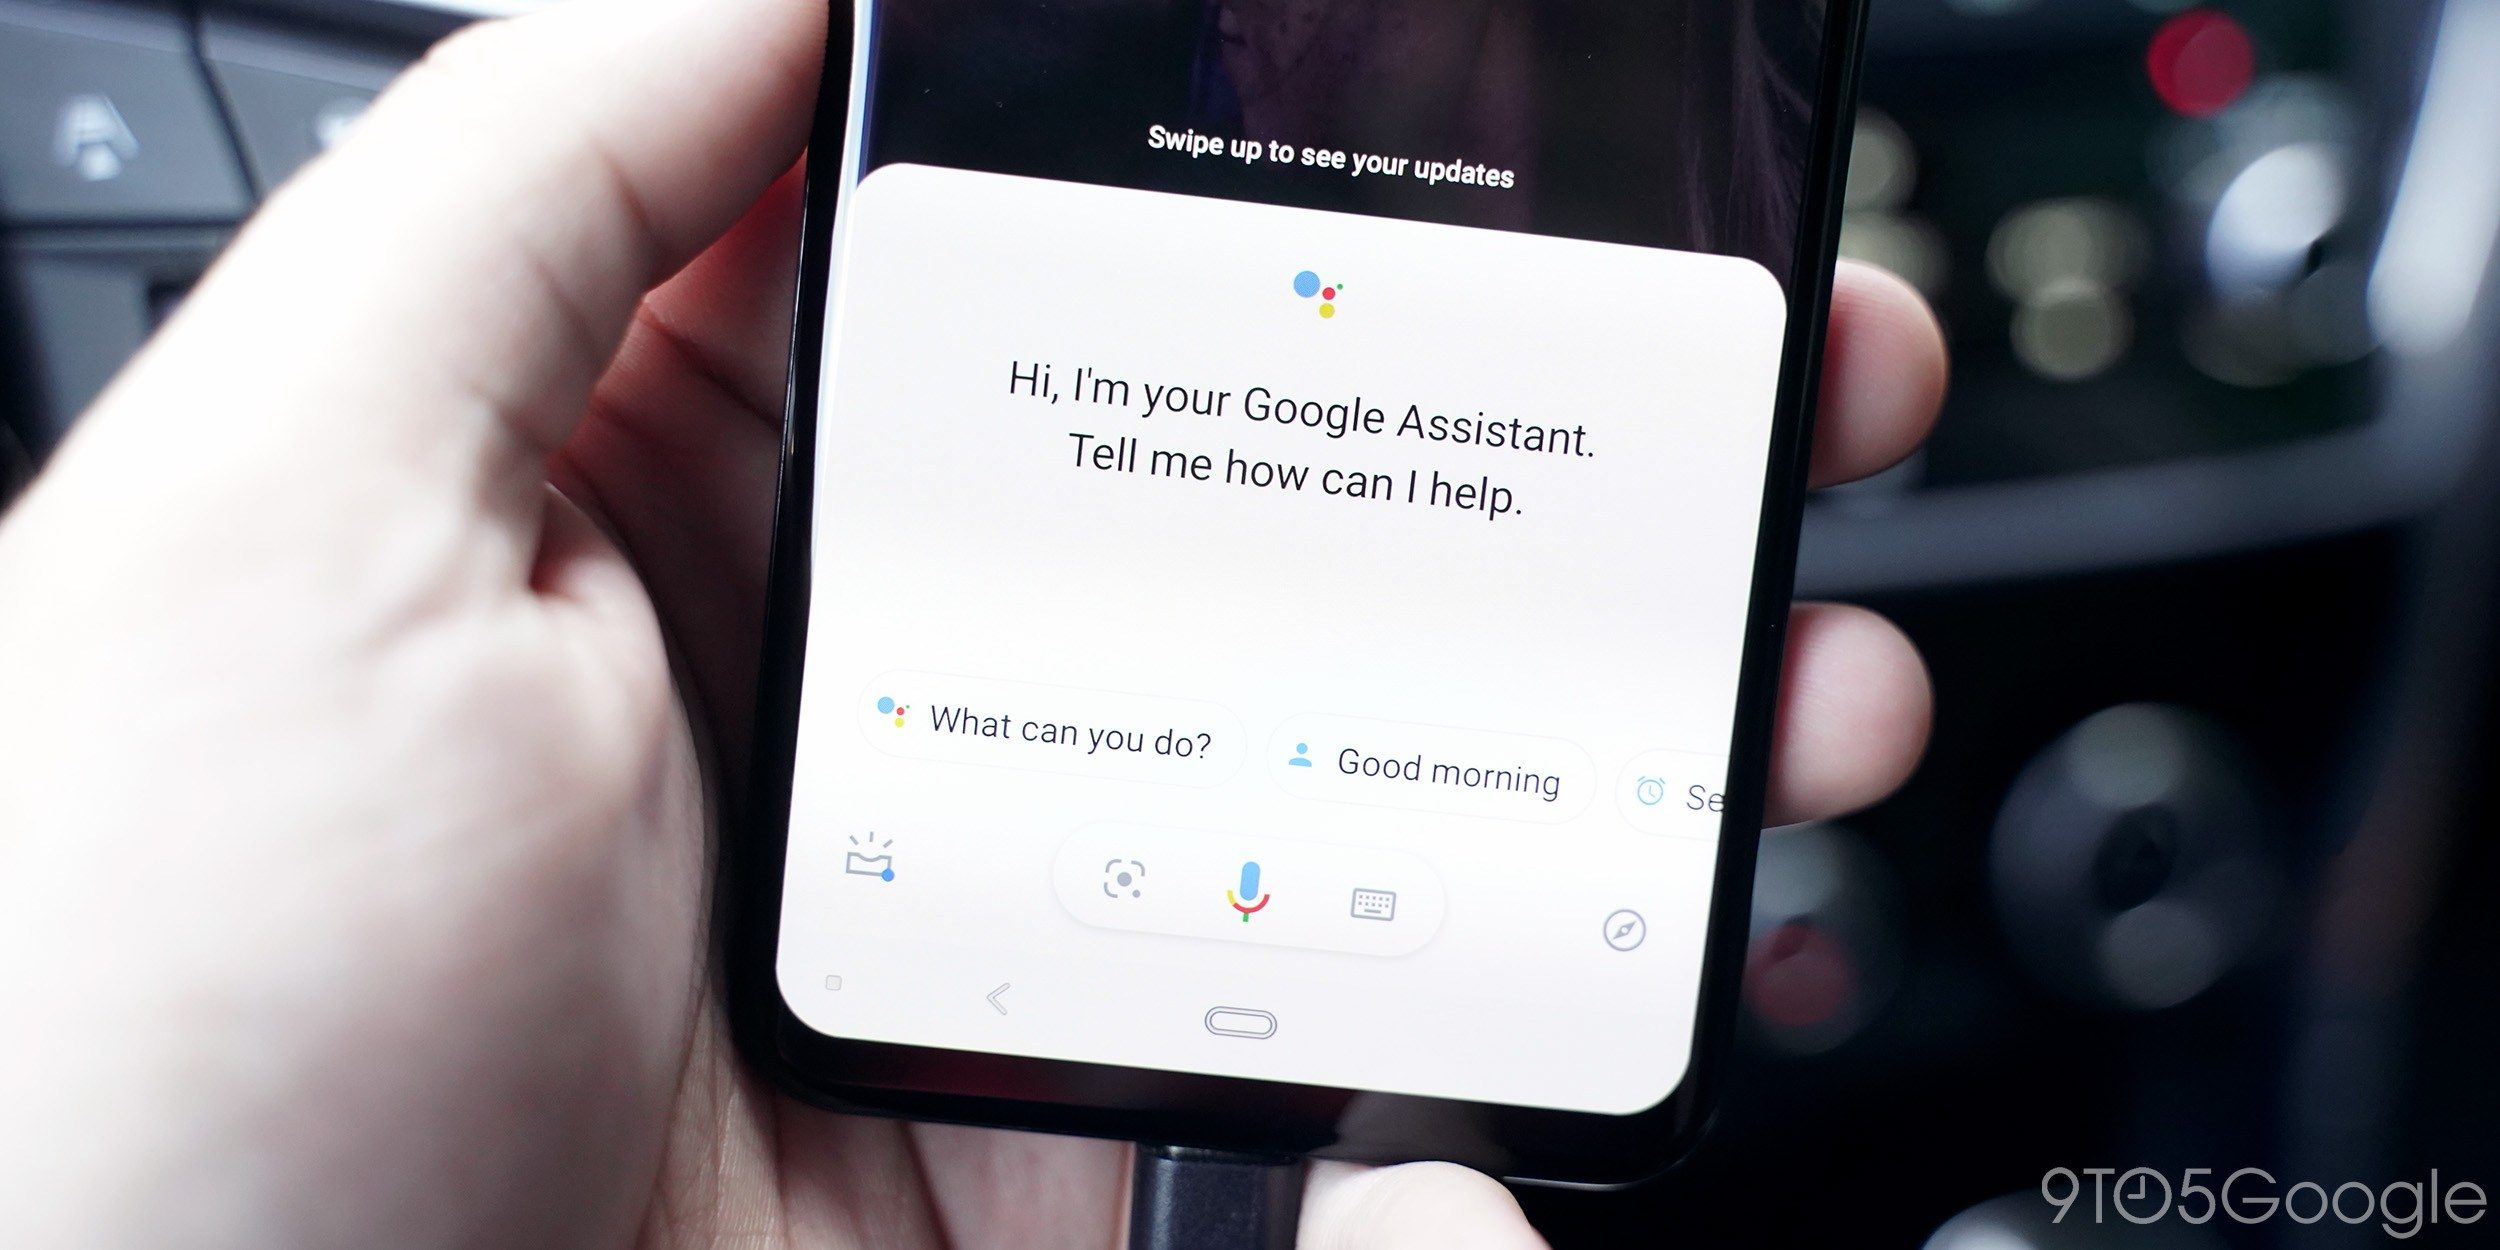 Google Assistance with a new feature to help you automatically remember where you parked your car